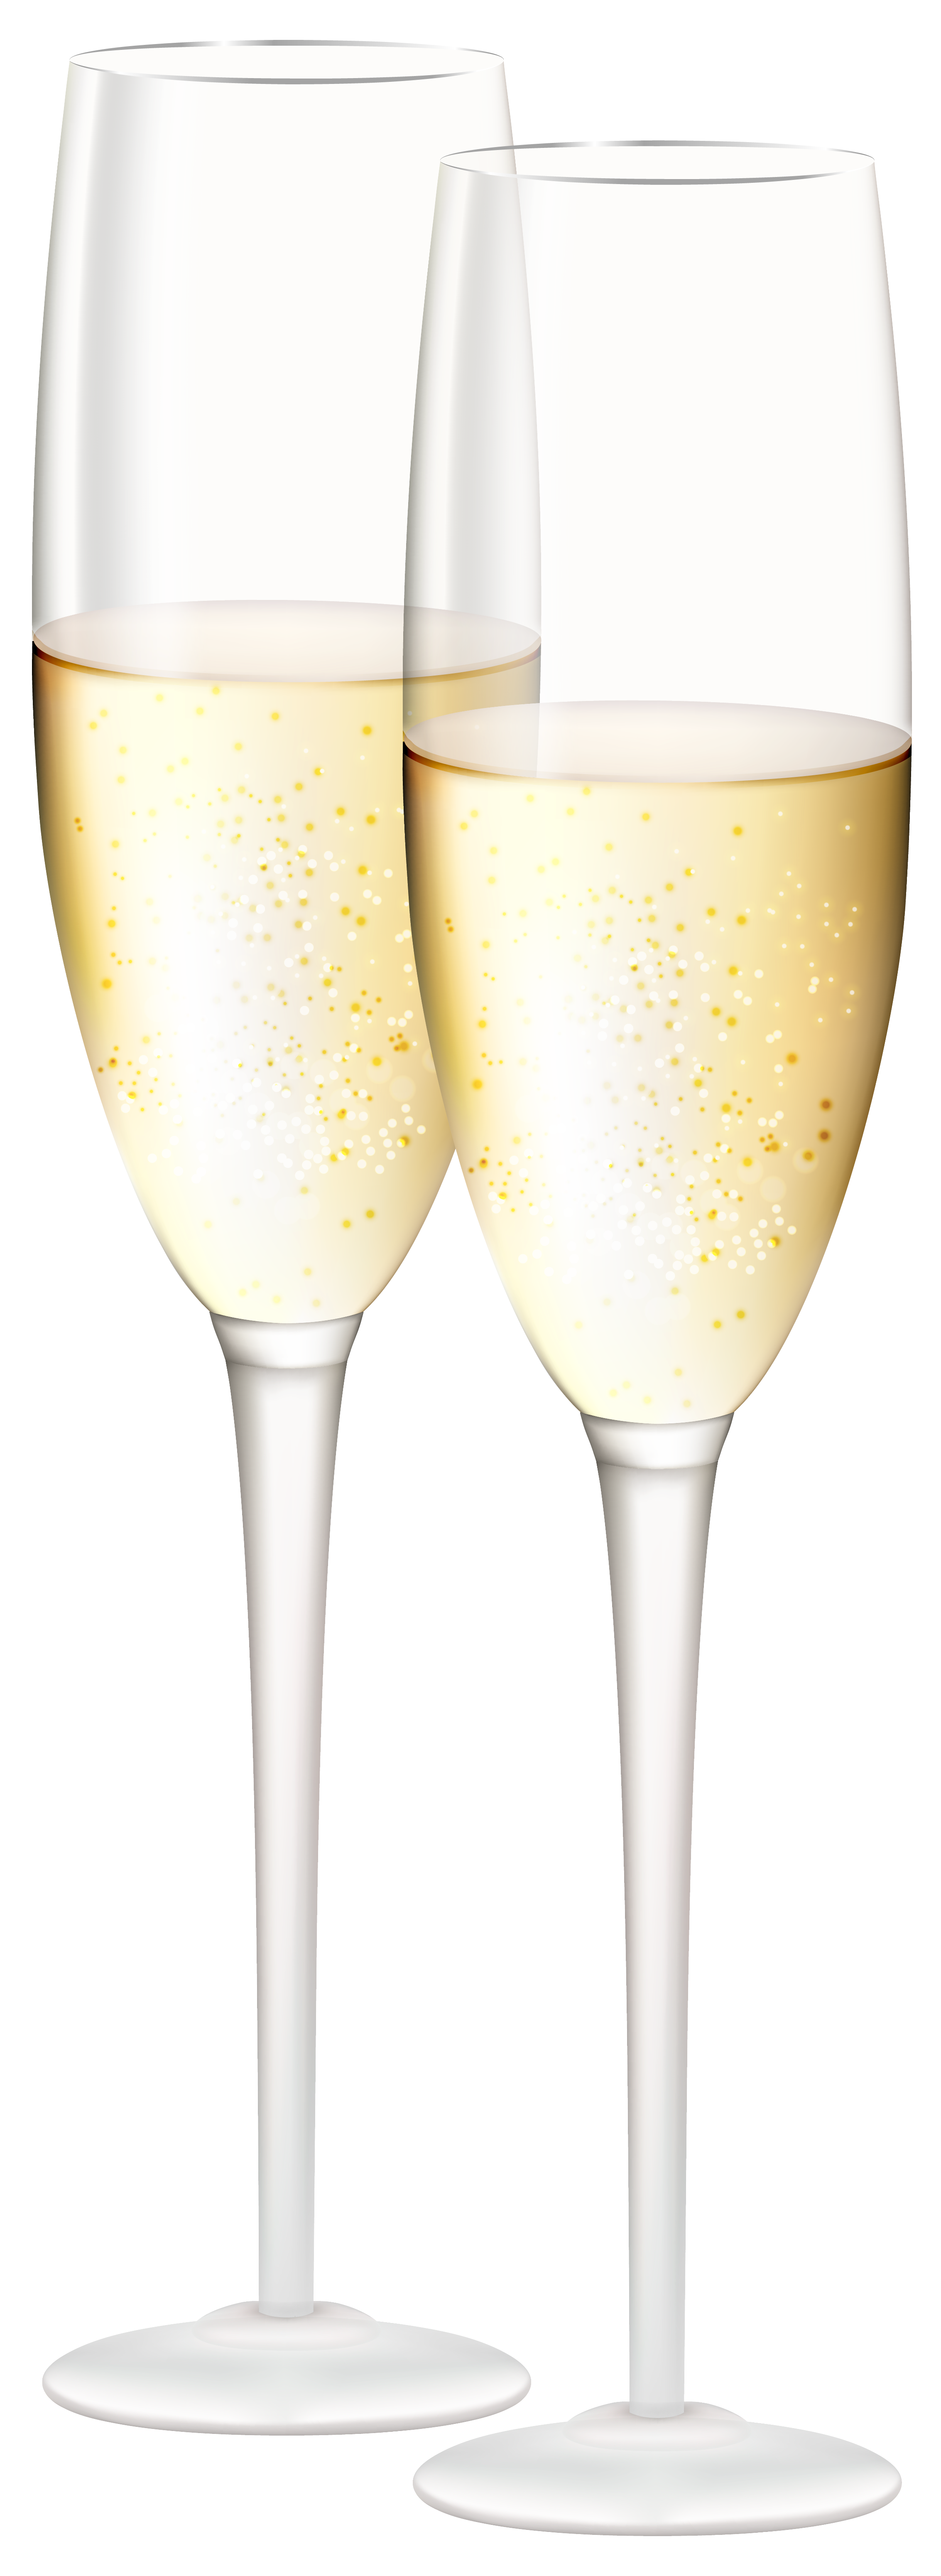 Glasses transparent png clip. Drinking clipart champagne